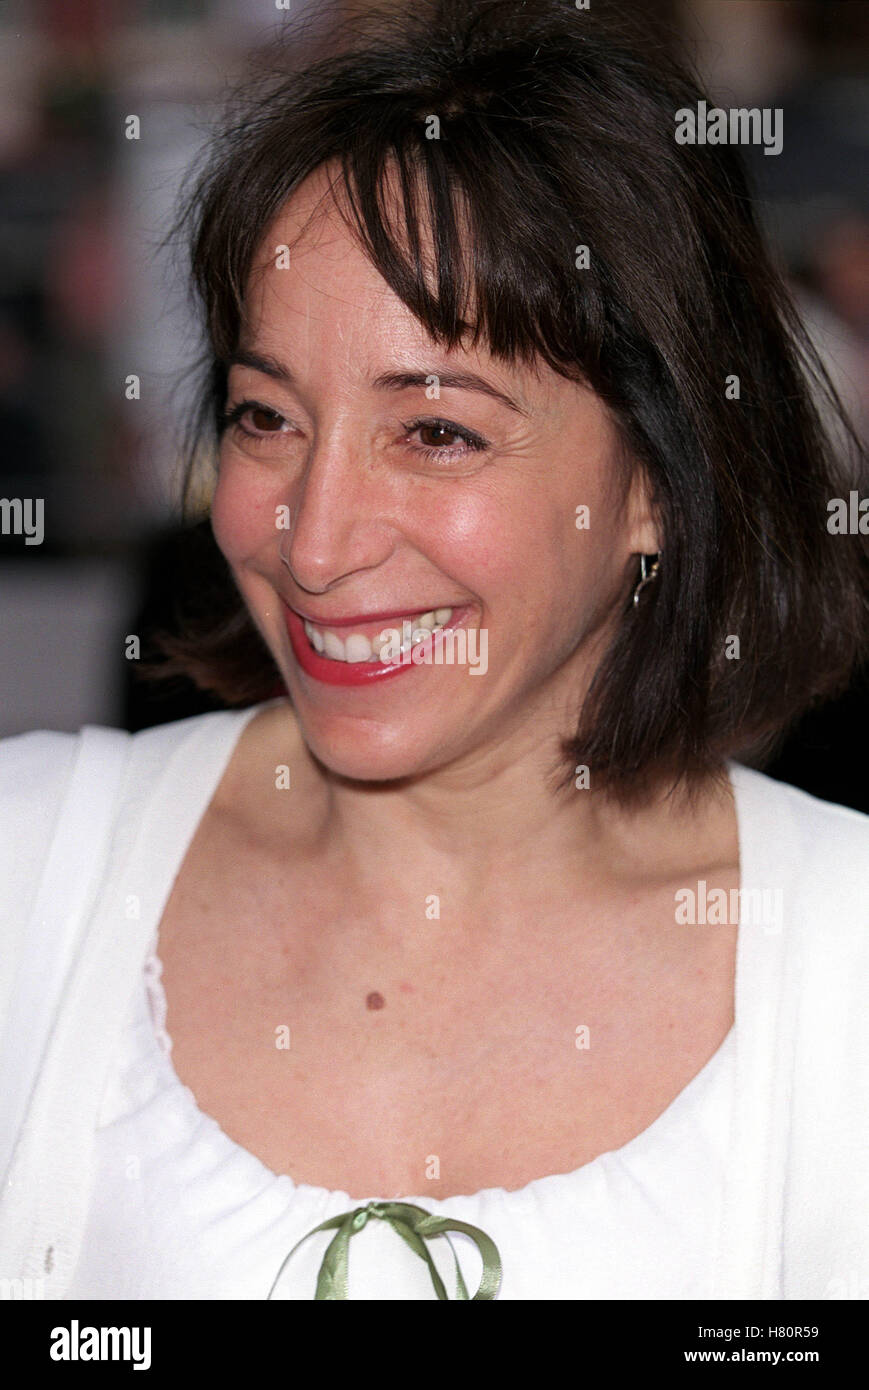 didi conn gothamdidi conn grease, didi conn net worth, didi conn 2016, didi conn age, didi conn young, didi conn movies, didi conn grease live, didi conn match game, didi conn svu, didi conn shining time station, didi conn grease 2, didi conn 2017, didi conn husband, didi conn now, didi conn nana visitor, didi conn images, didi conn today, didi conn gotham, didi conn transparent, didi conn photos